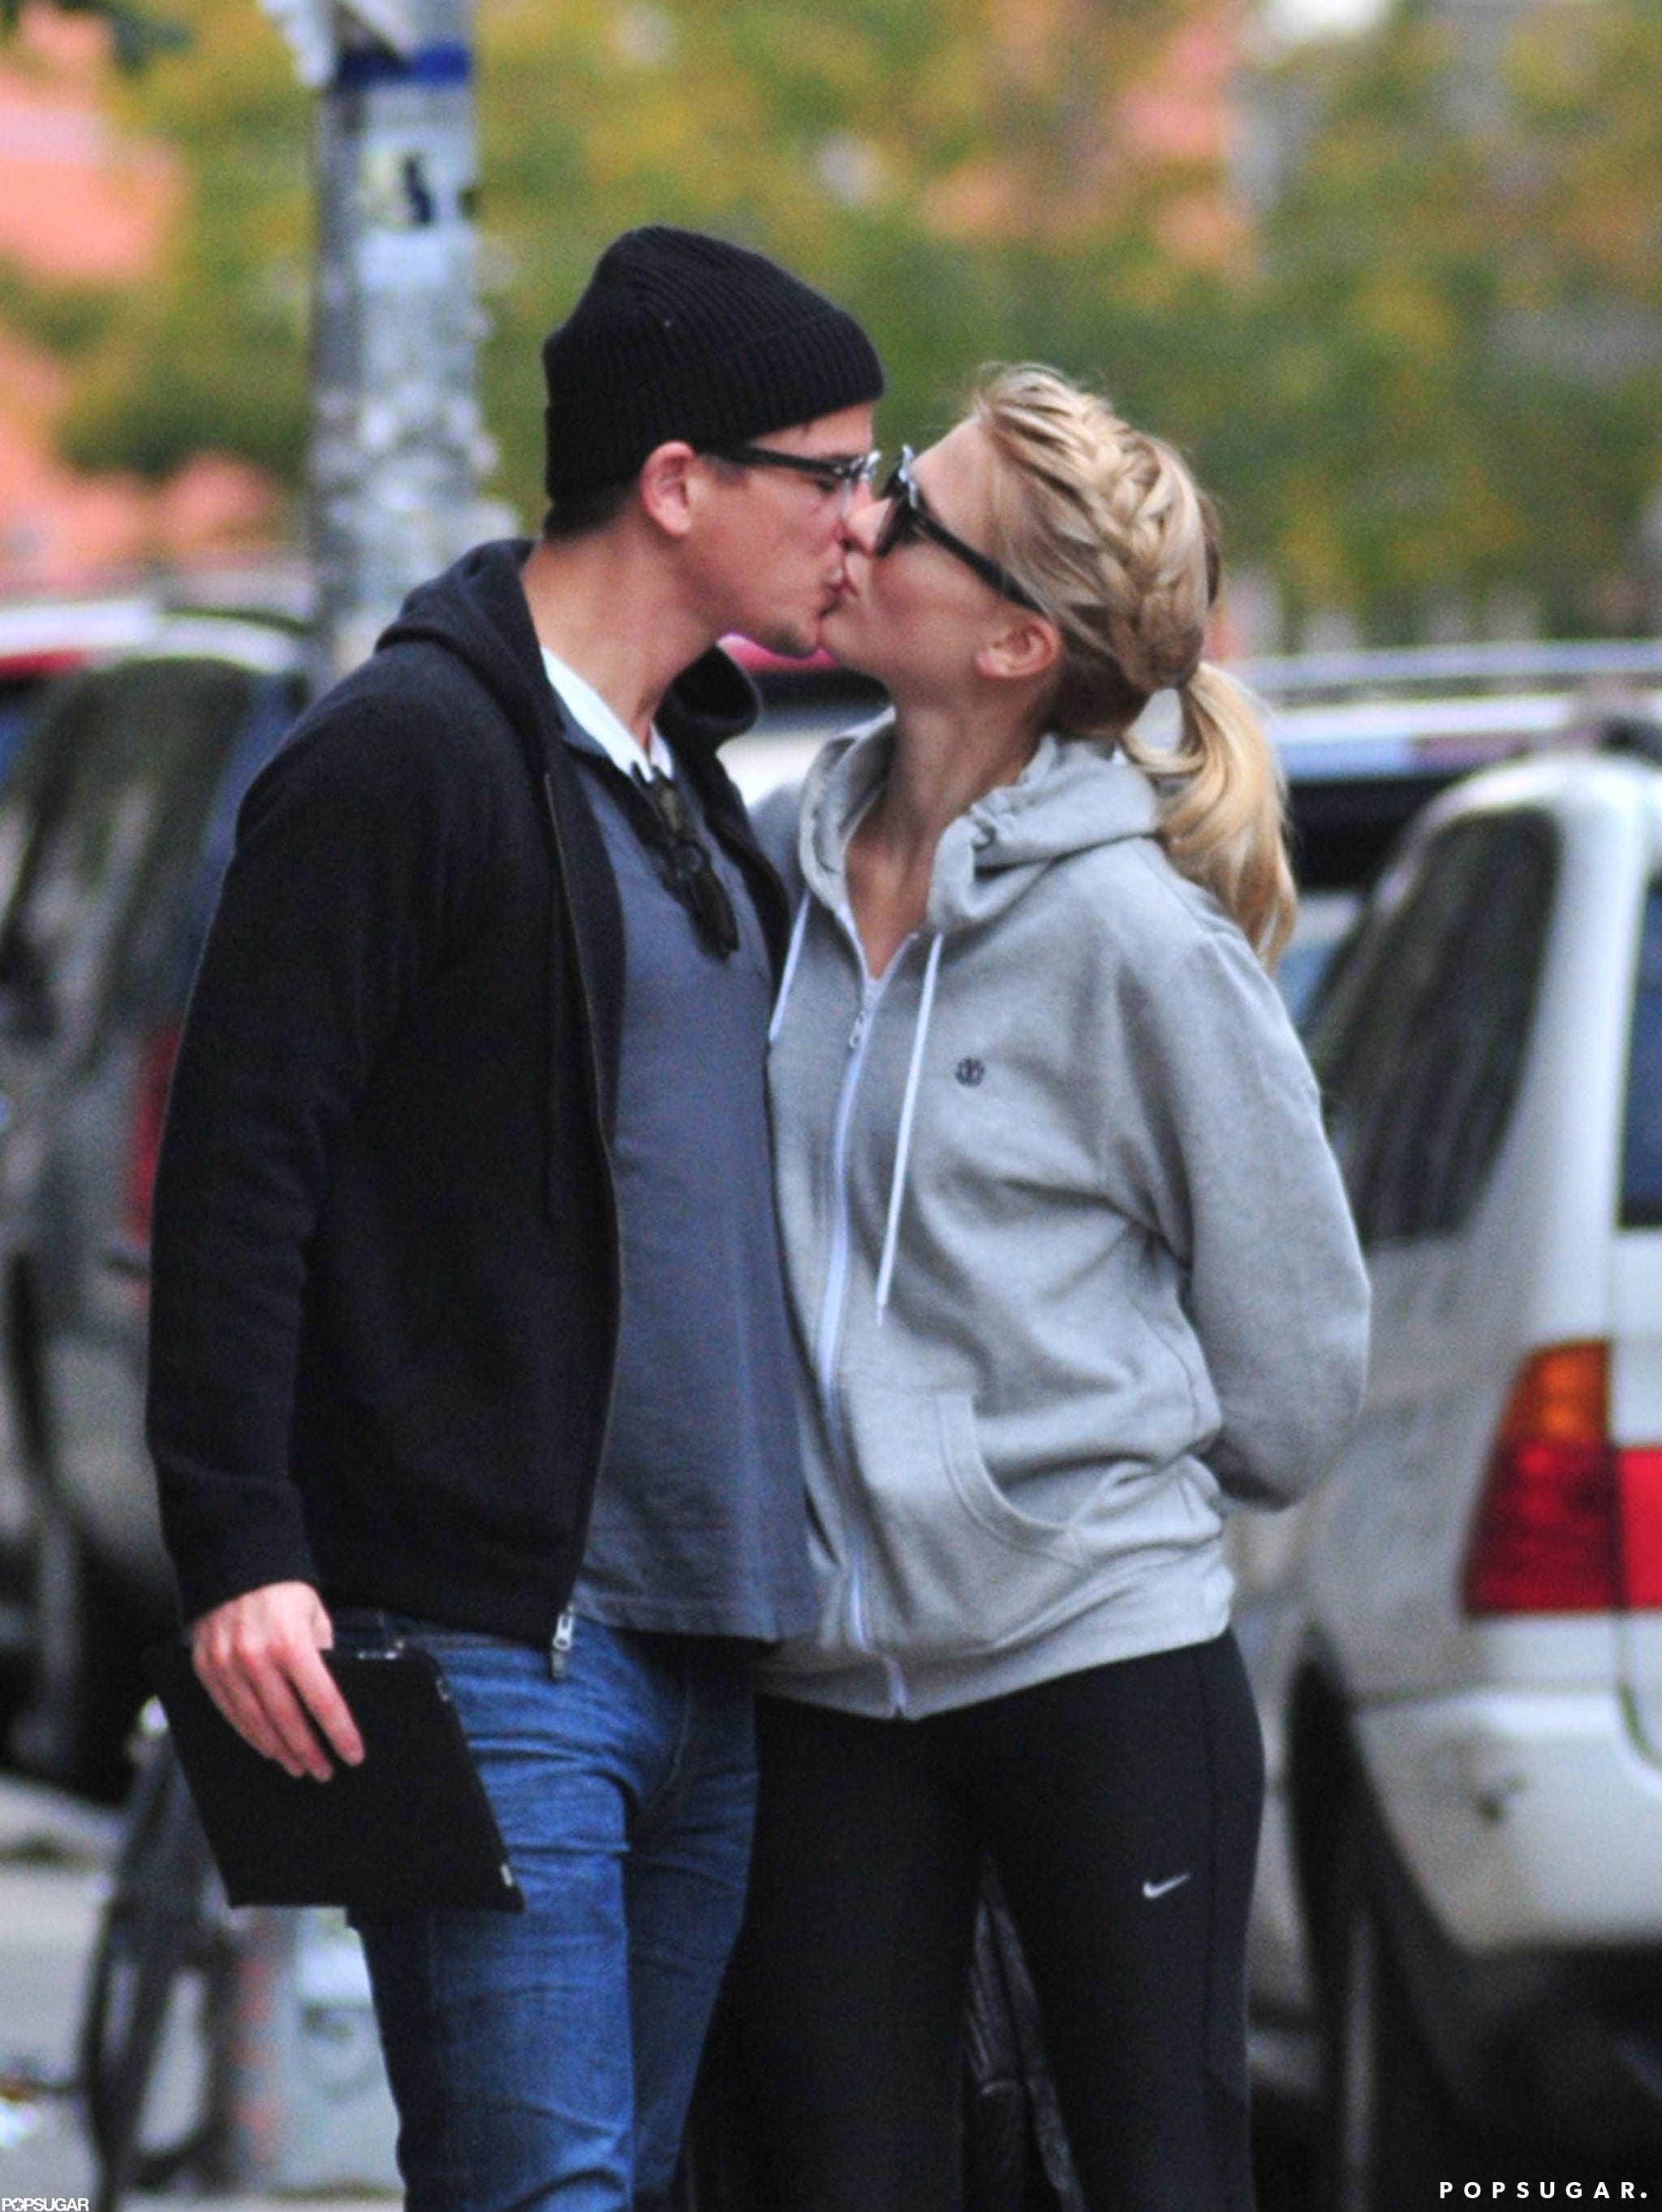 Josh Hartnett and Sophia Lie locked lips on the streets of NYC in October 2011.